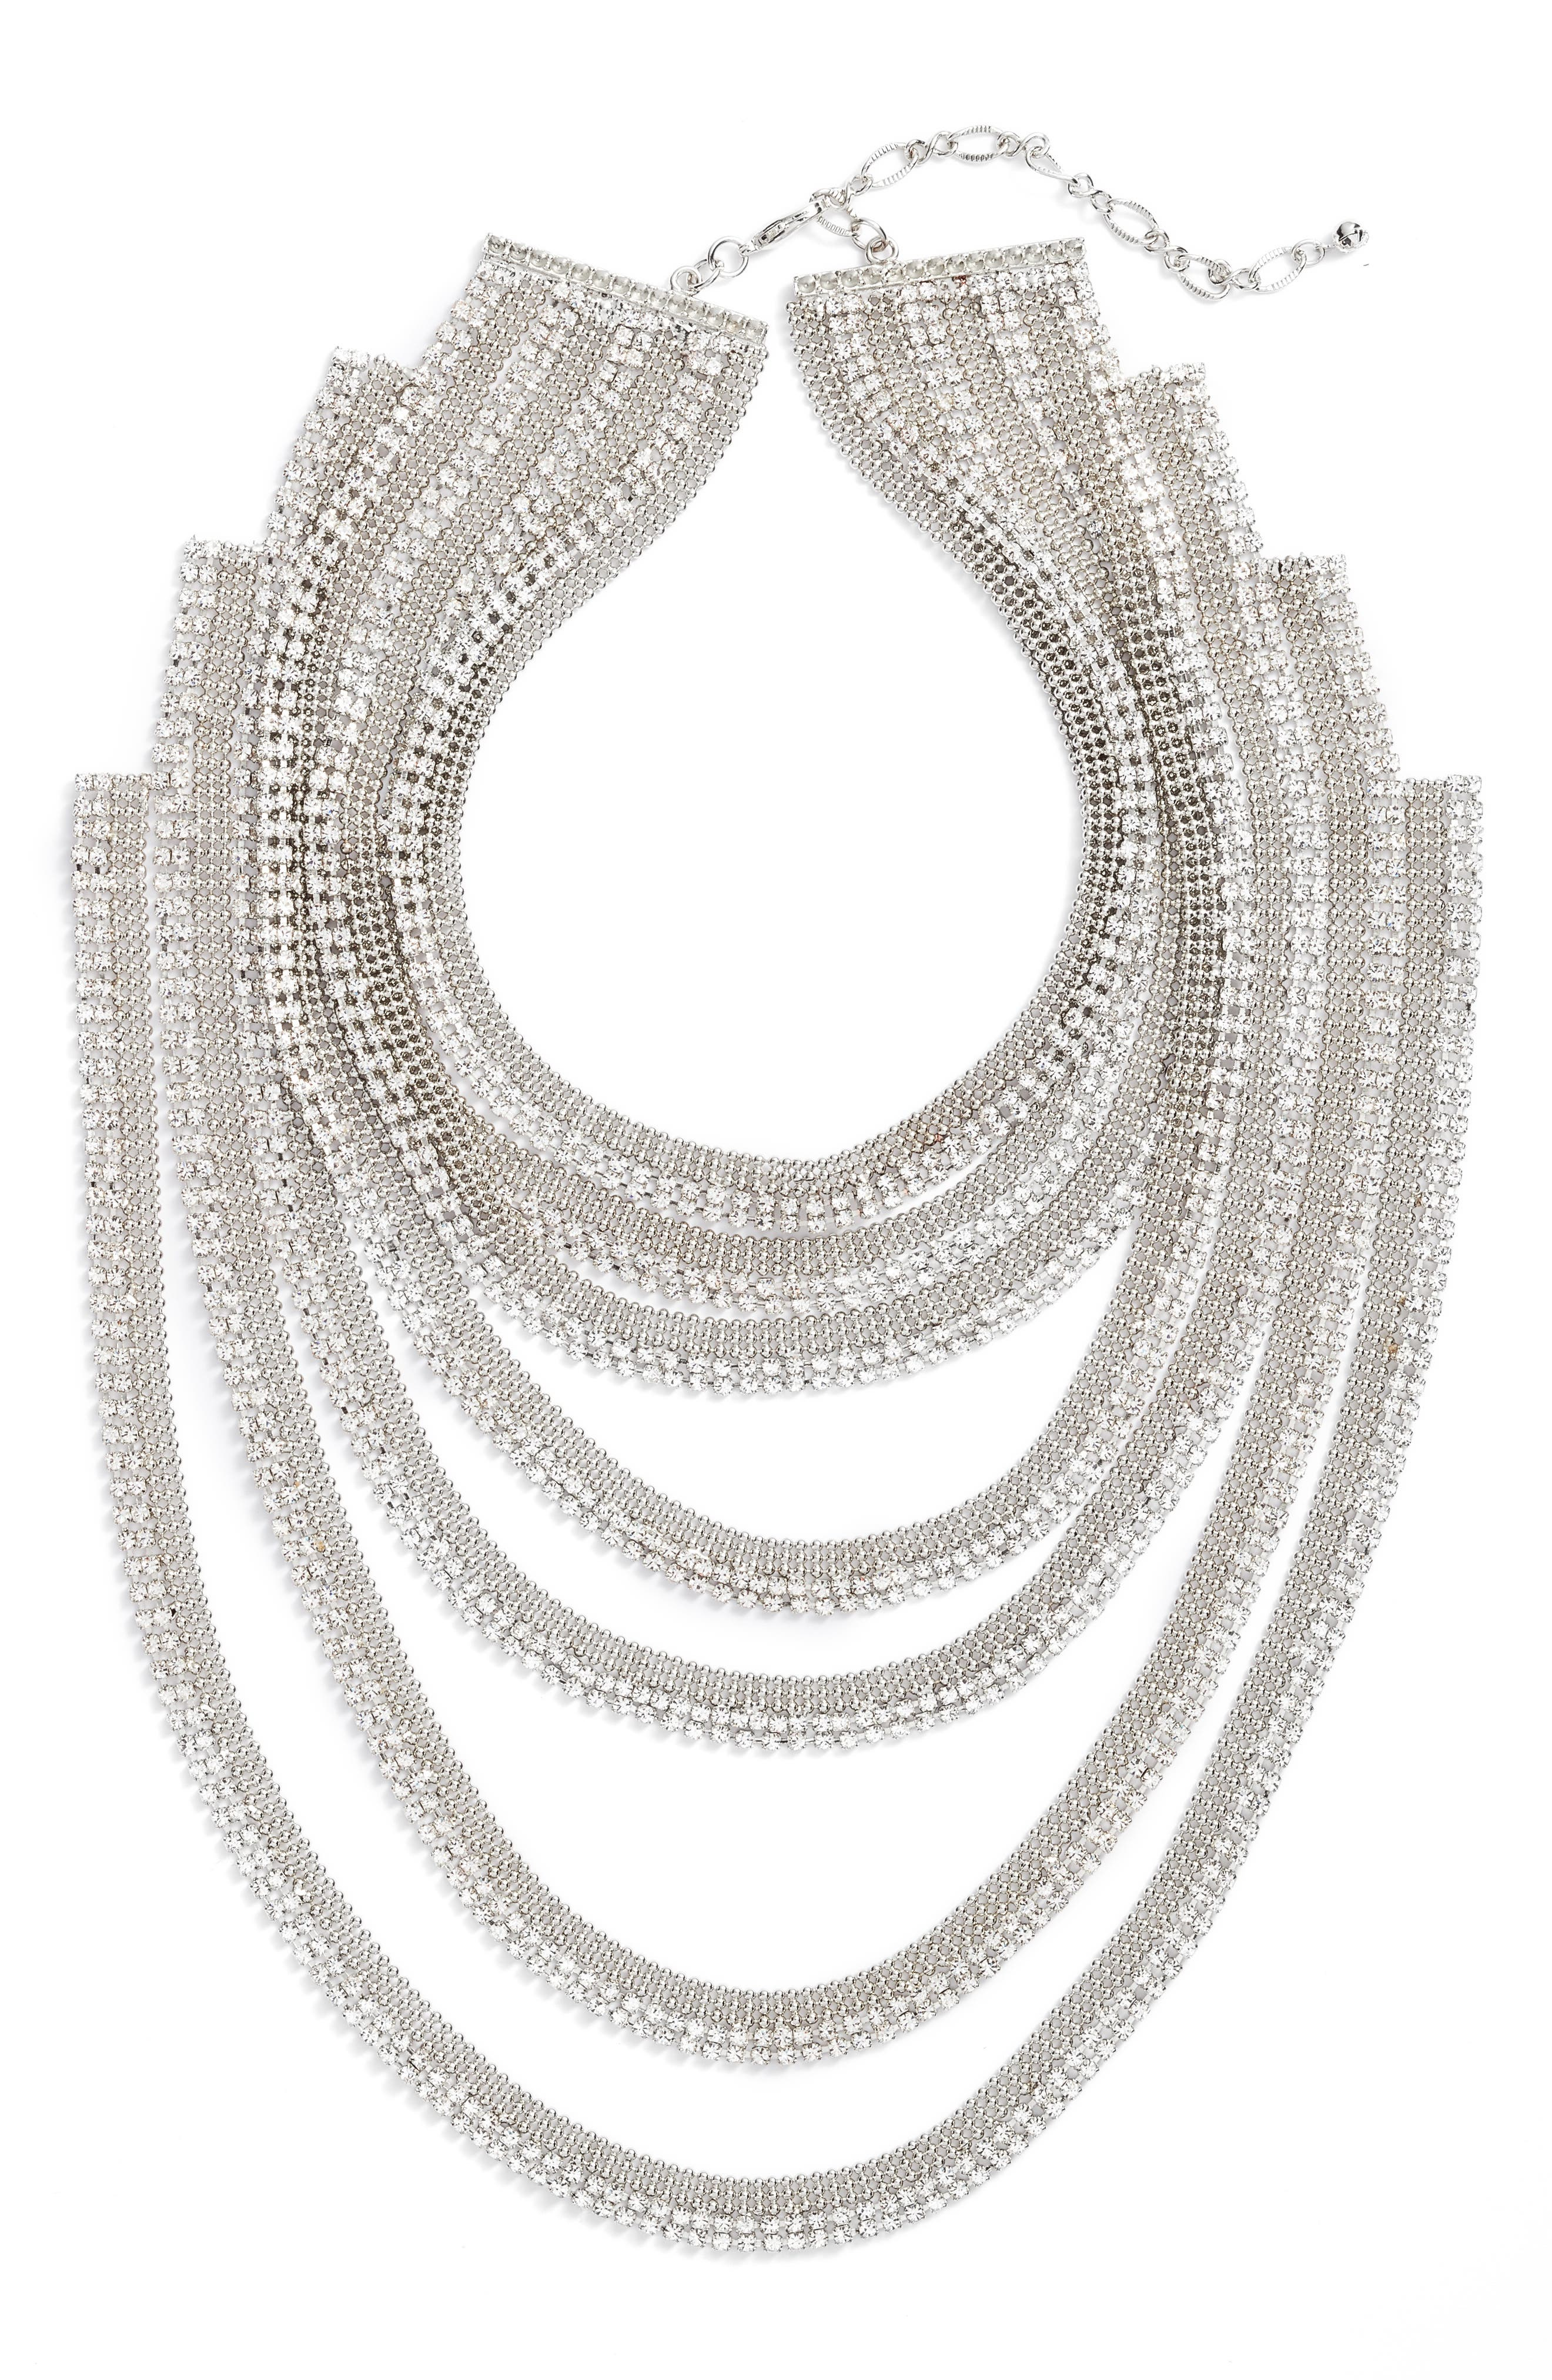 CRISTABELLE Multistrand Statement Necklace